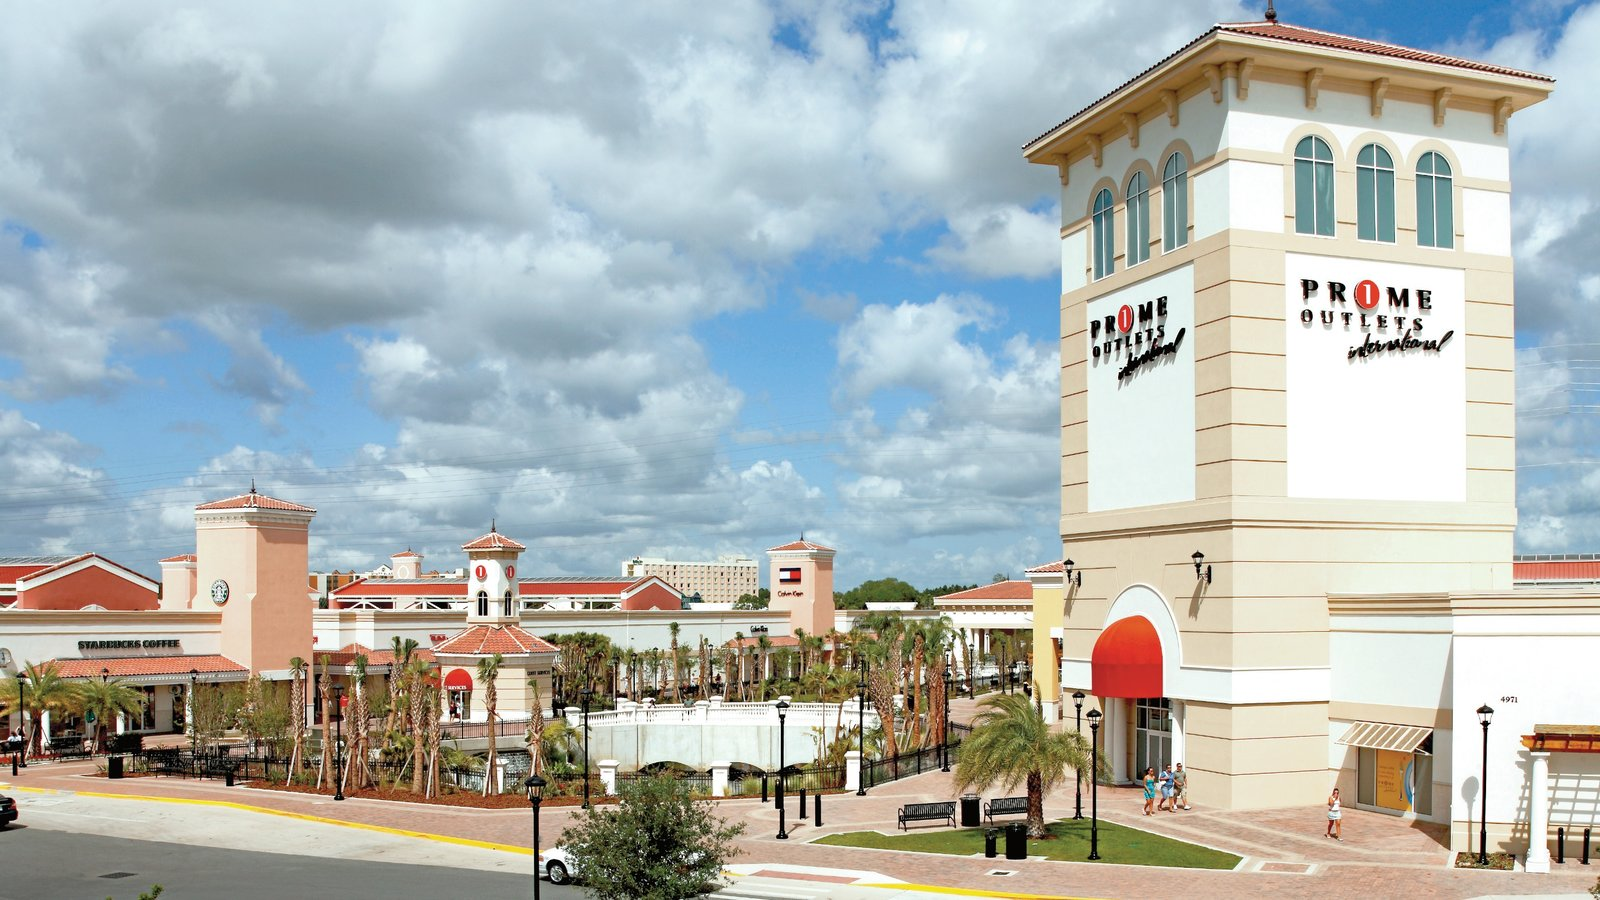 Oct 09, · Orlando International Premium Outlets(R), Florida's largest and most unique outlet shopping destination, is conveniently located less than three miles from Universal Studios and 10 miles from Walt Disney World Resort/5(K).